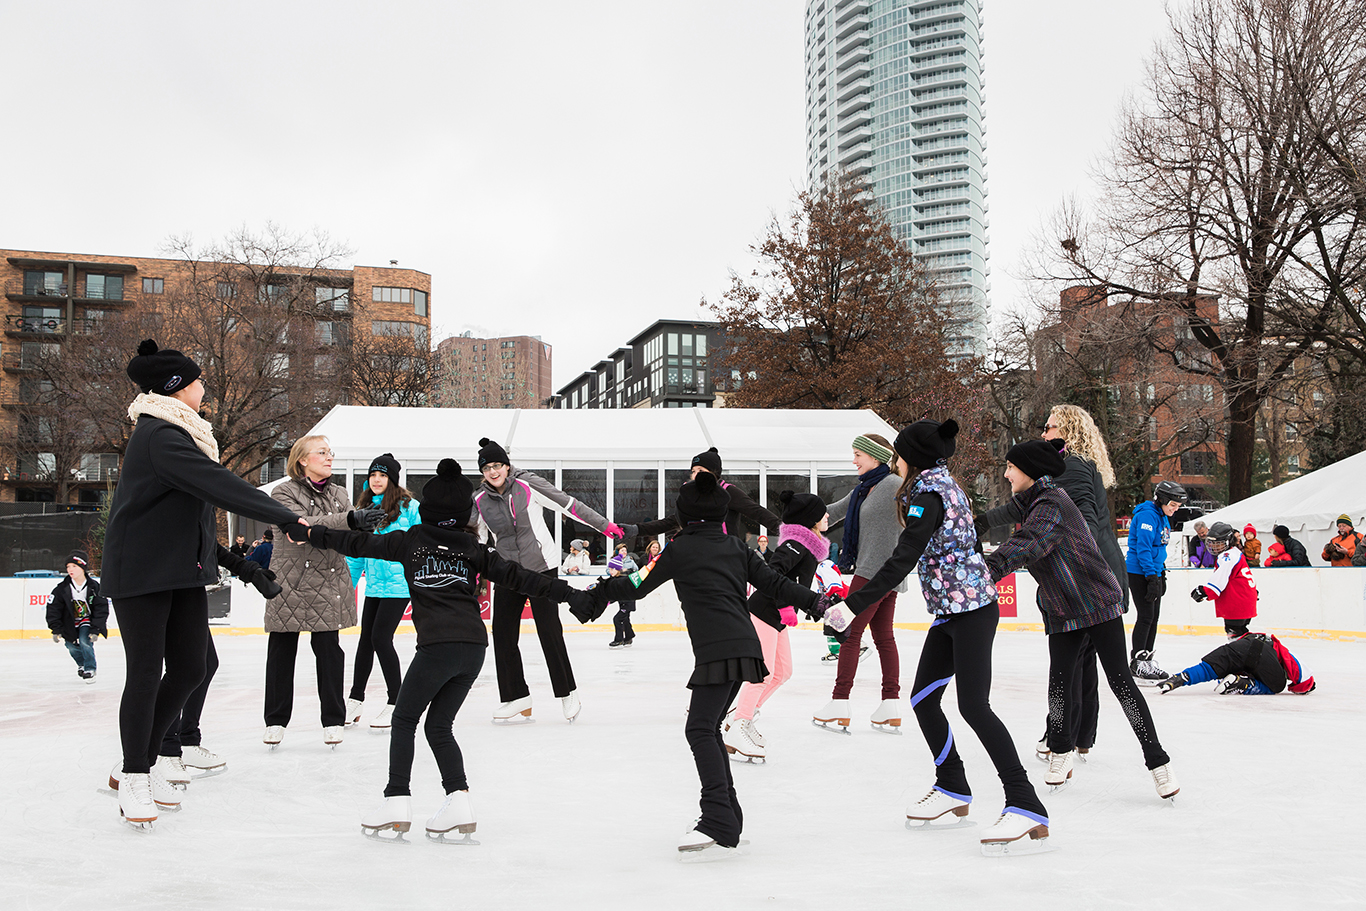 Wells Fargo Mpls WinterSkate Ceremonial Opening - mpls downtown council